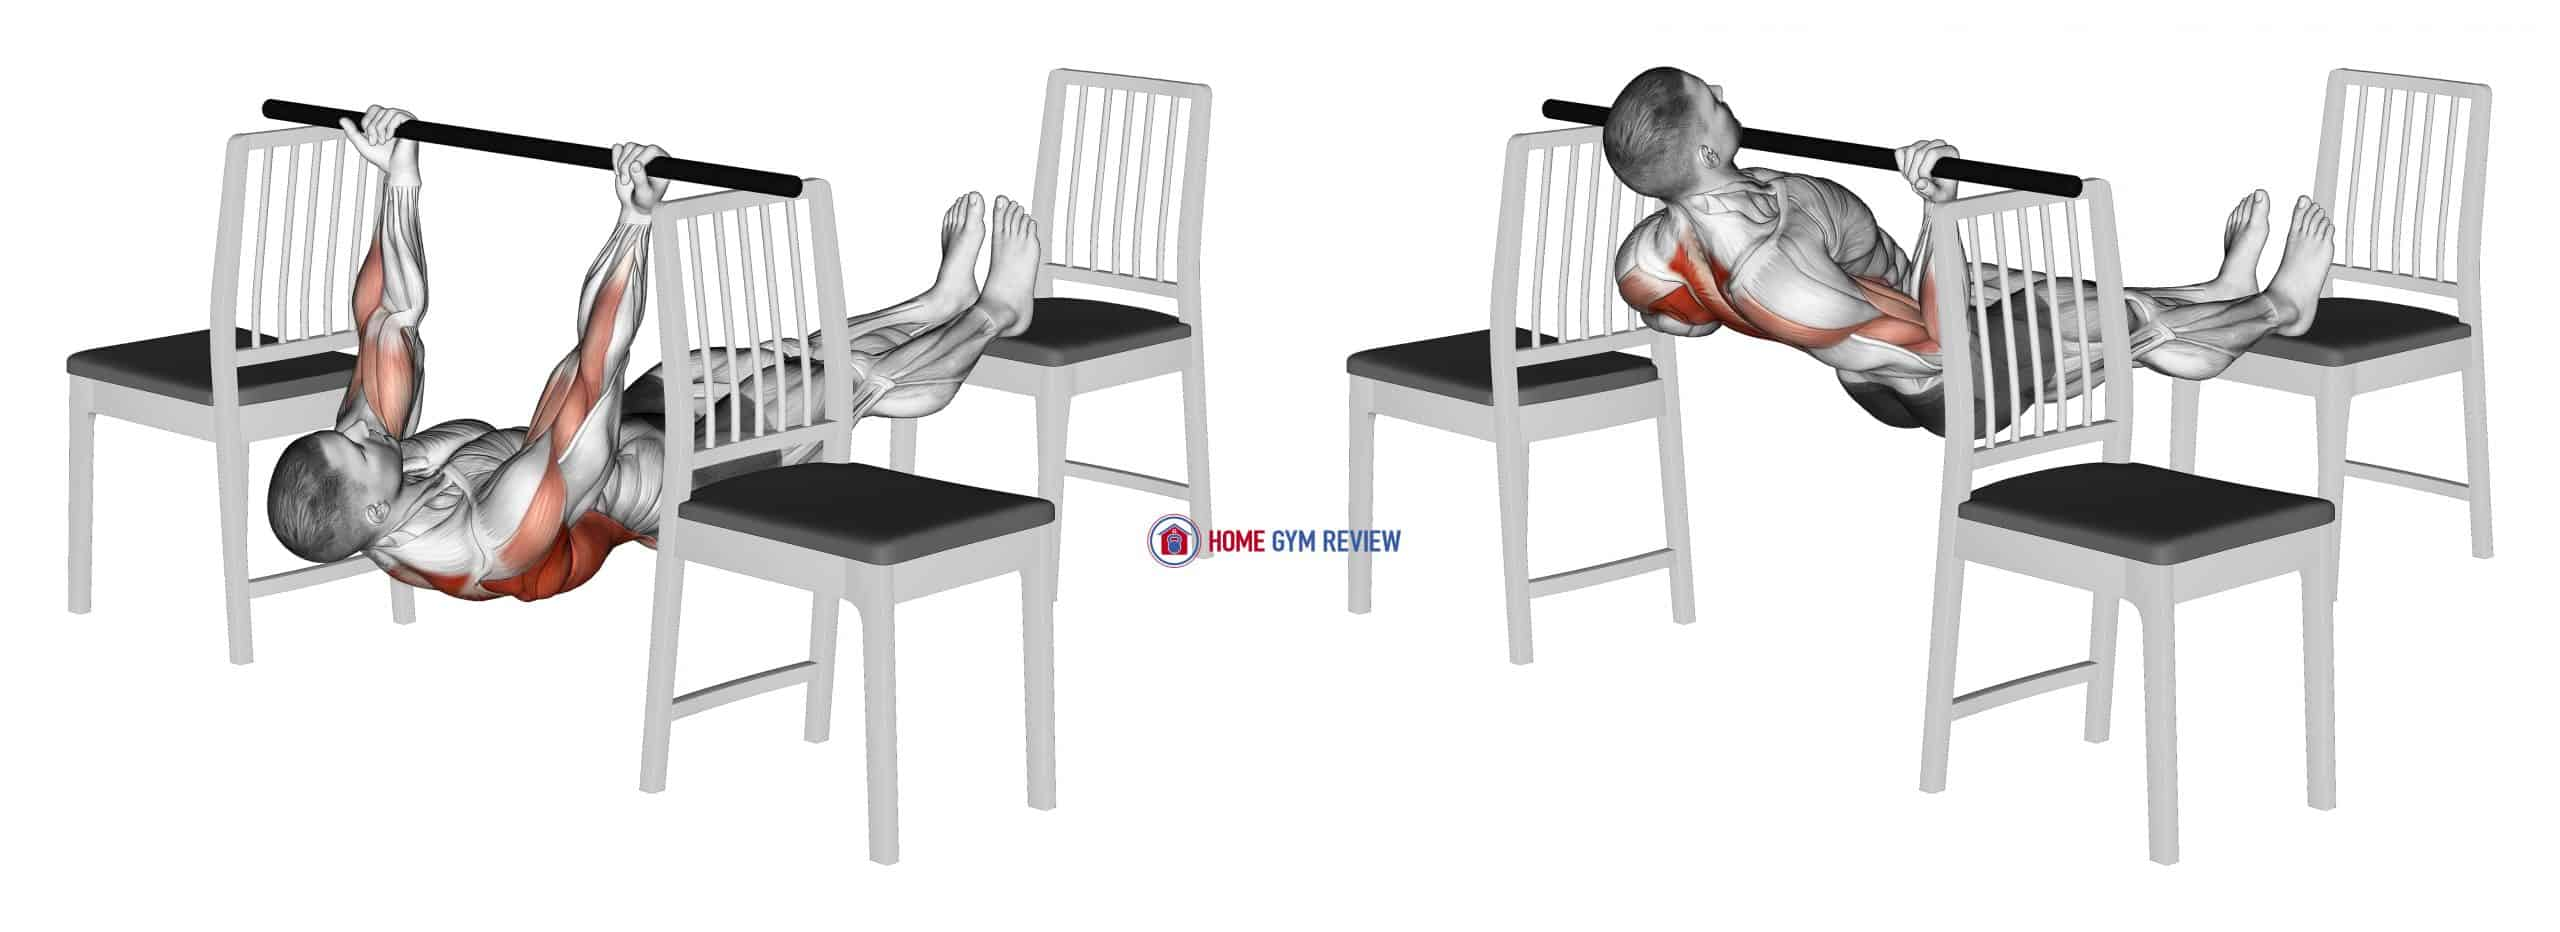 Elevanted Inverted Underhand Grip Row between 3 Chairs